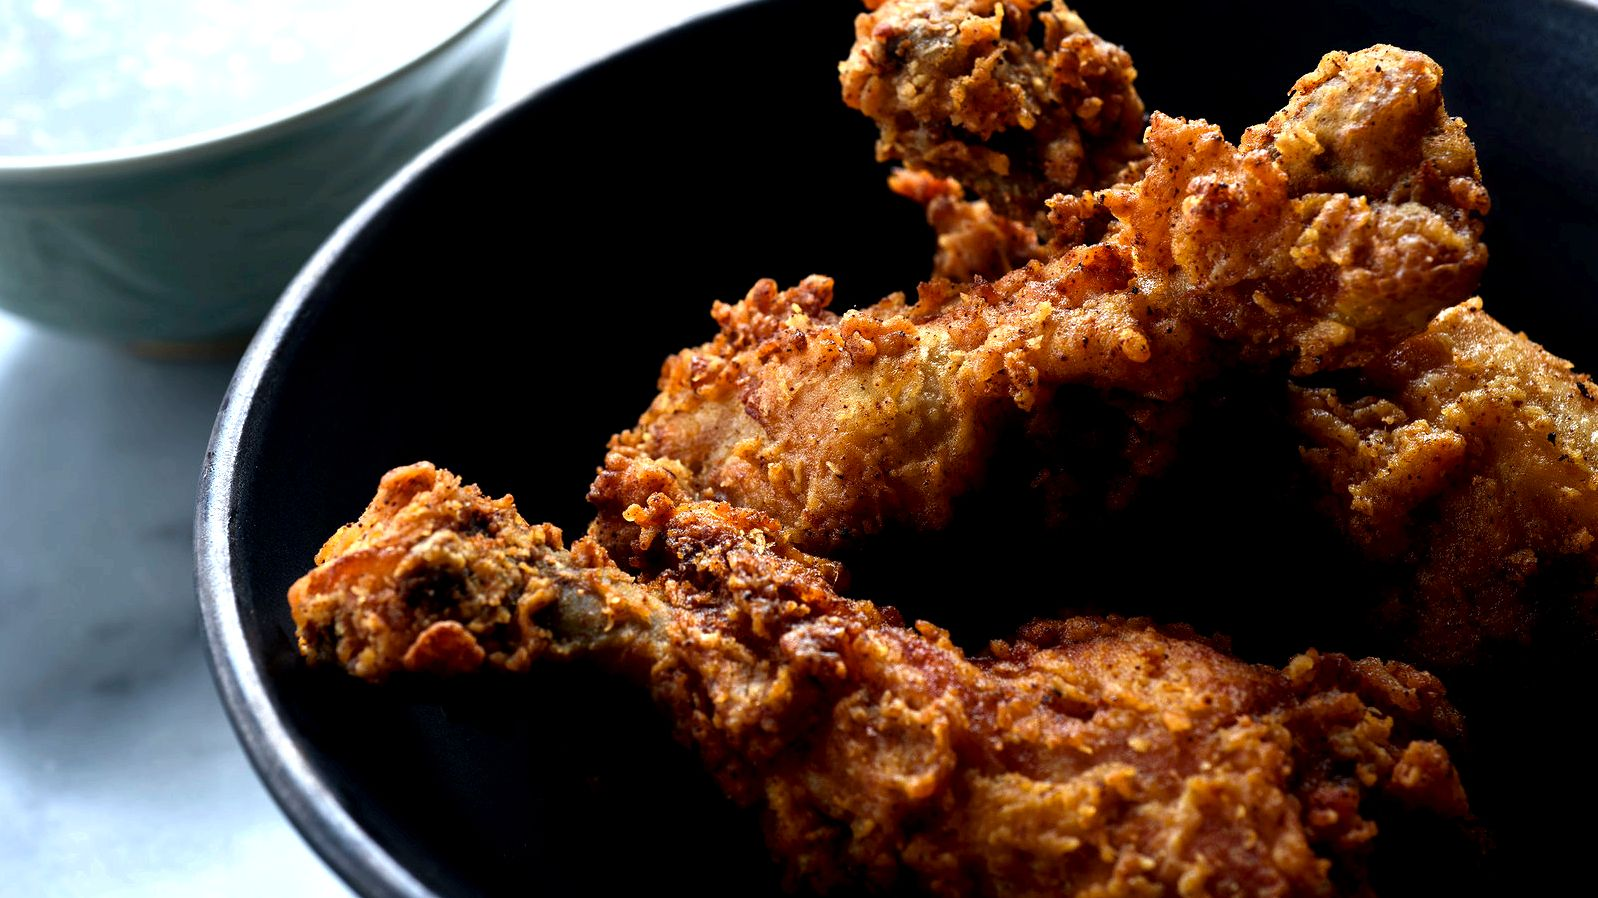 Steps to make fried chicken - nyt cooking of the couple of